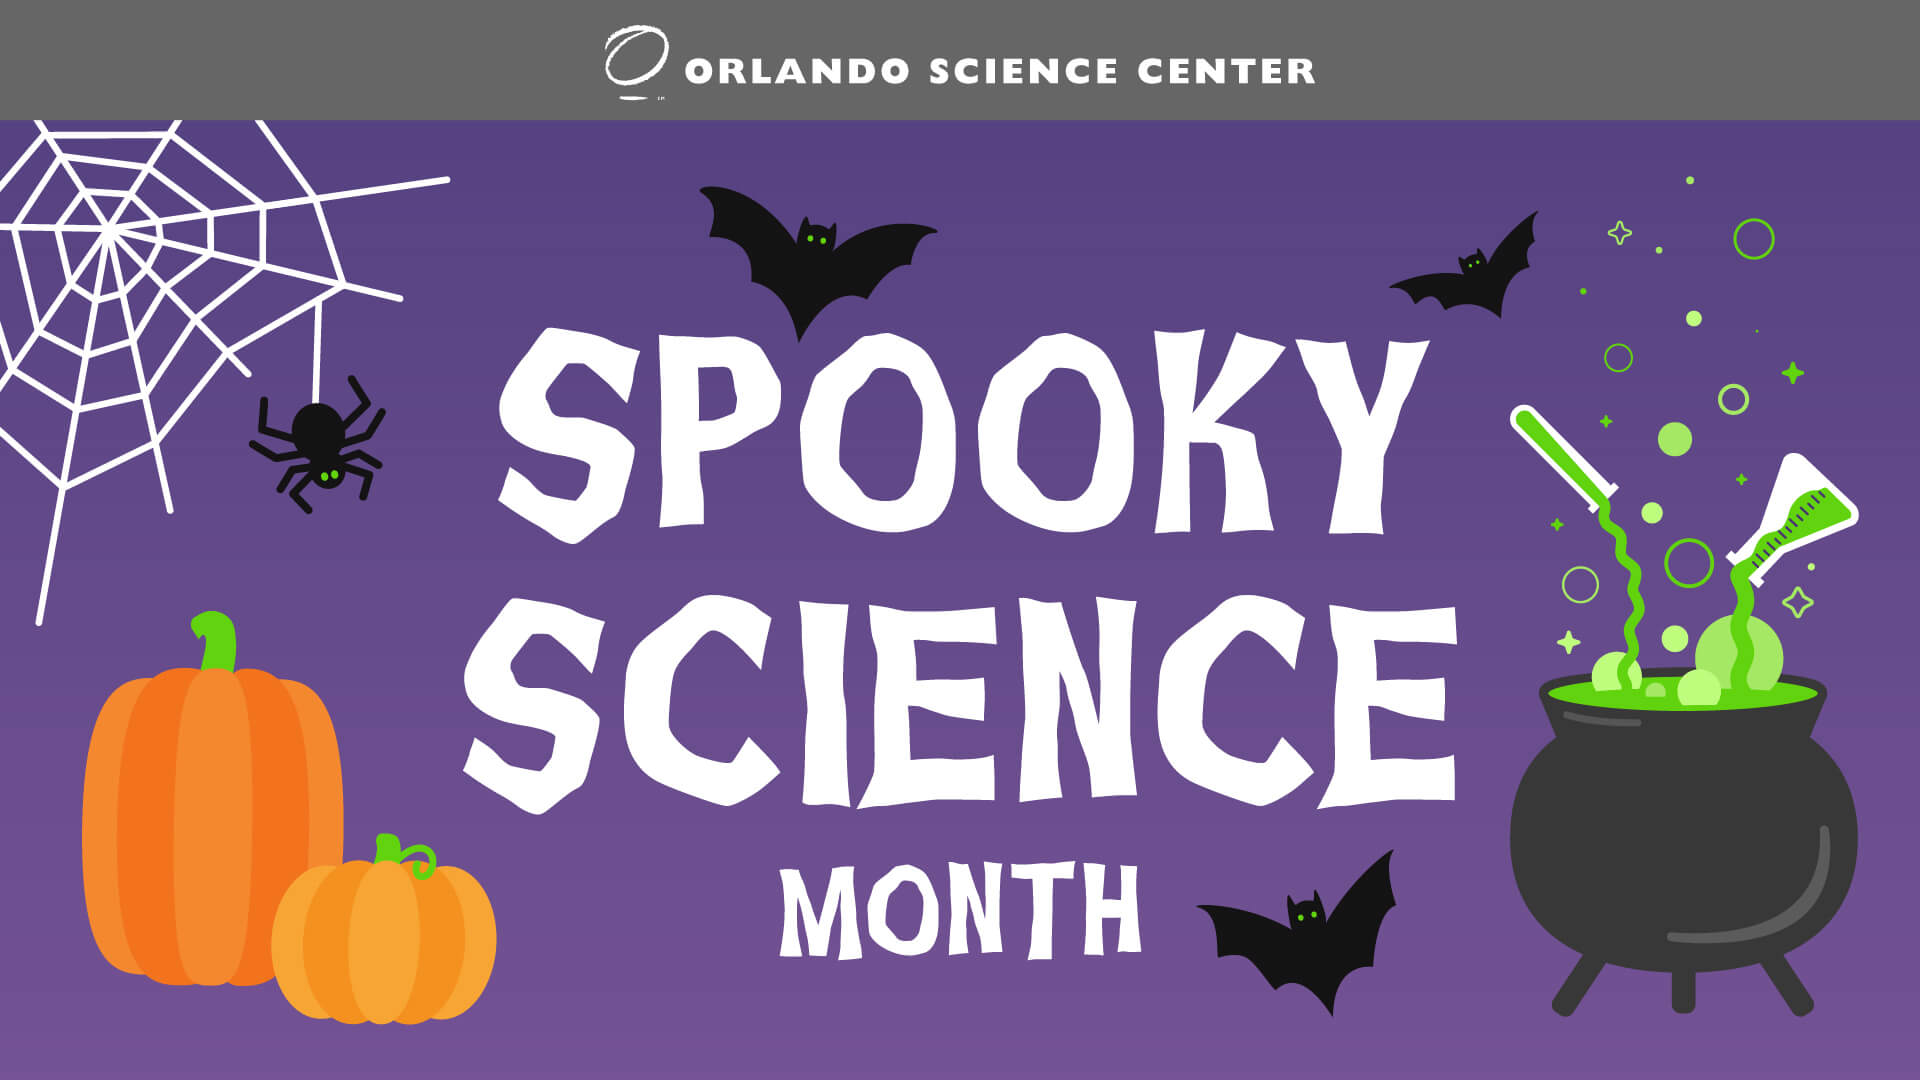 Spooky Science Month